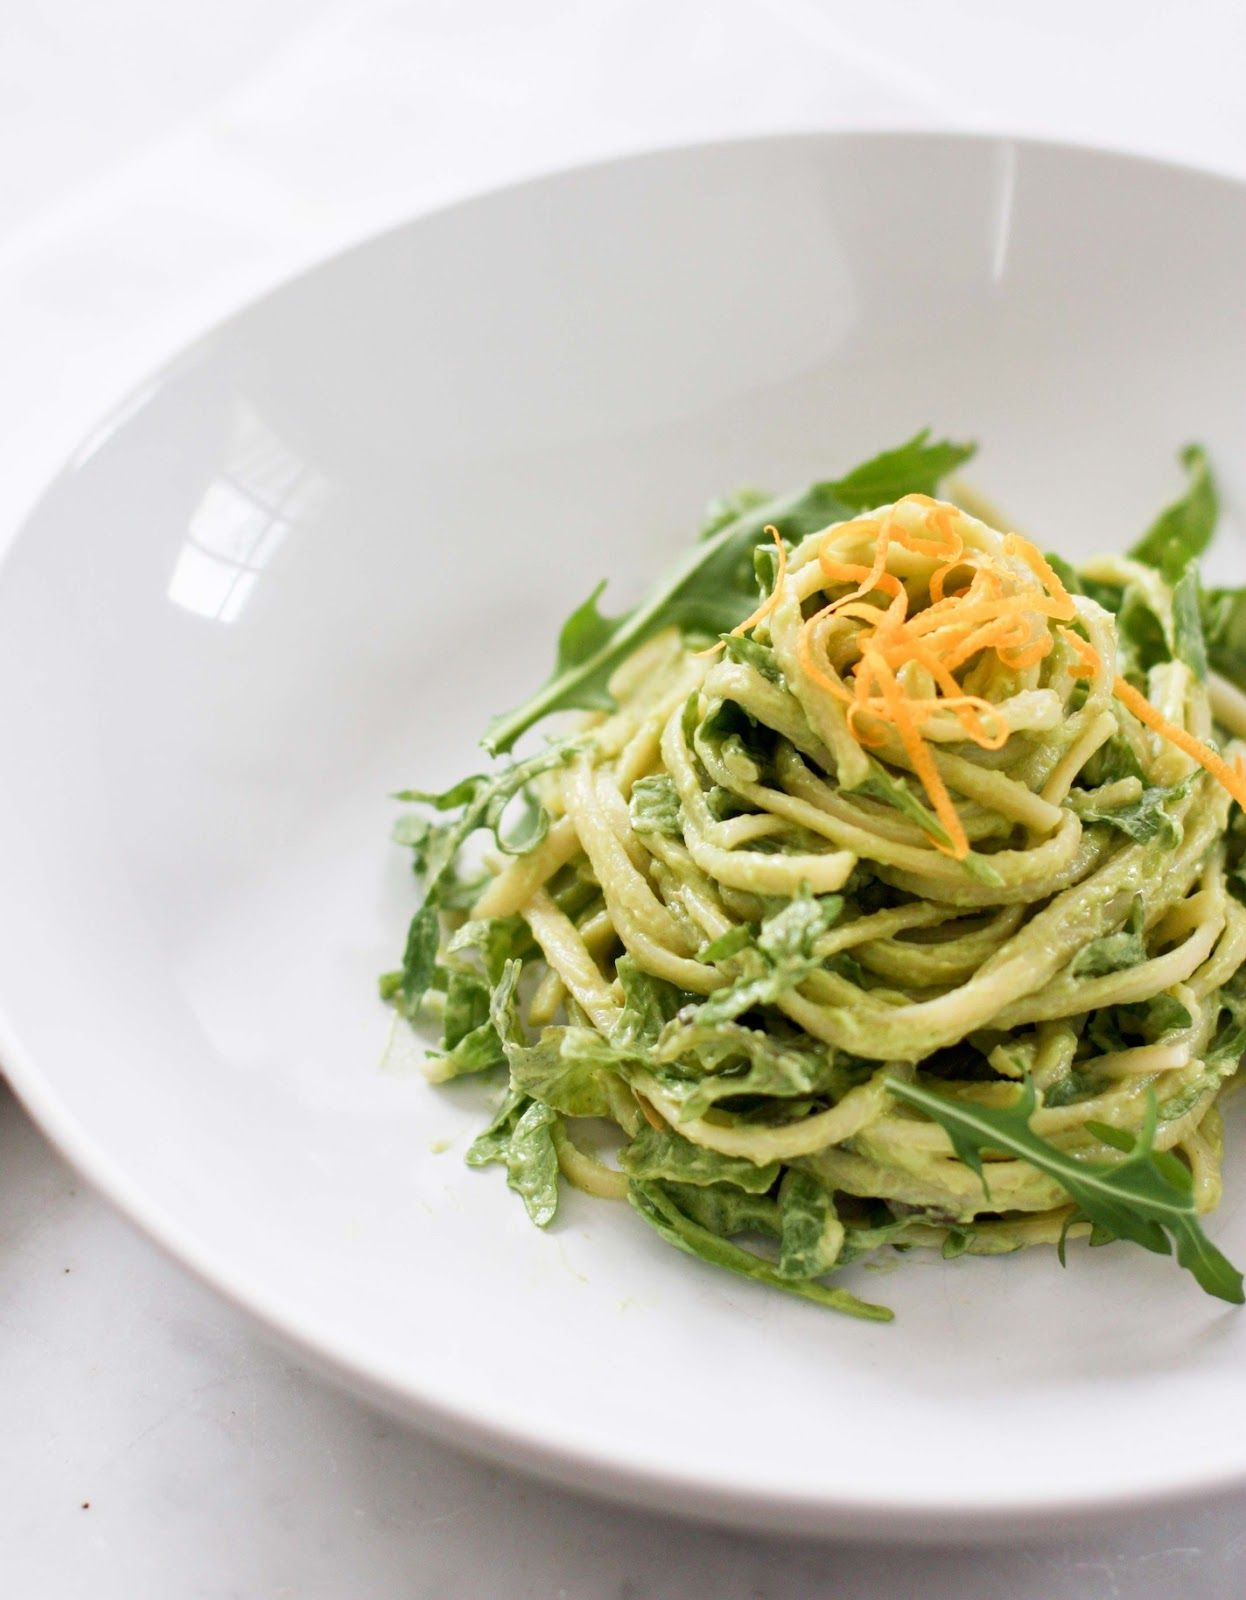 A really great combination in this Creamy Avocado Linguine with Meyer Lemon and Arugula recipe.